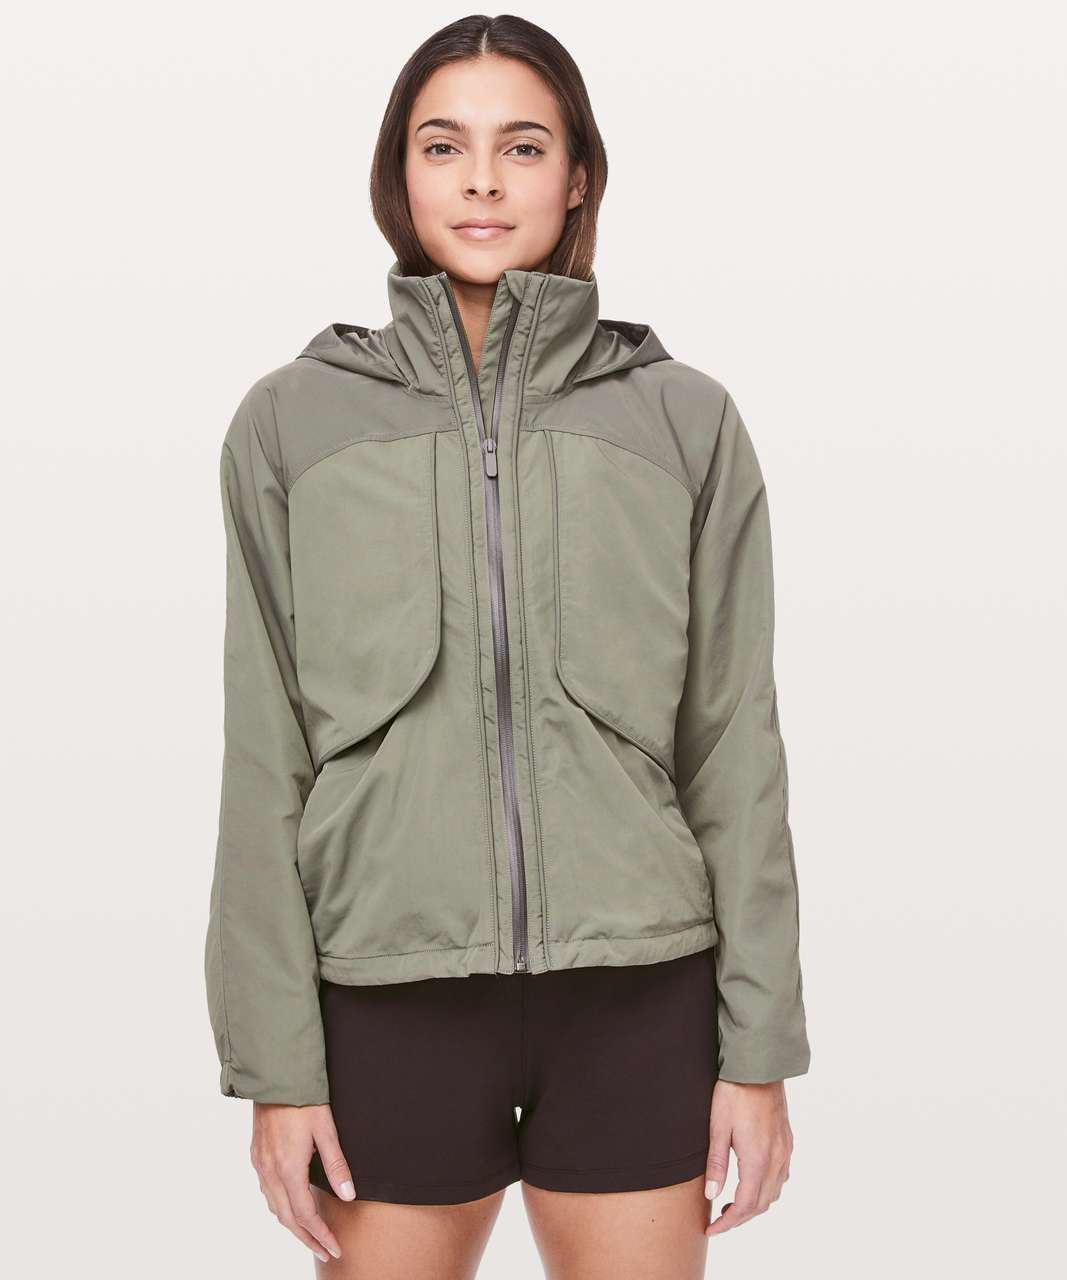 Lululemon Always Effortless Jacket - Grey Sage